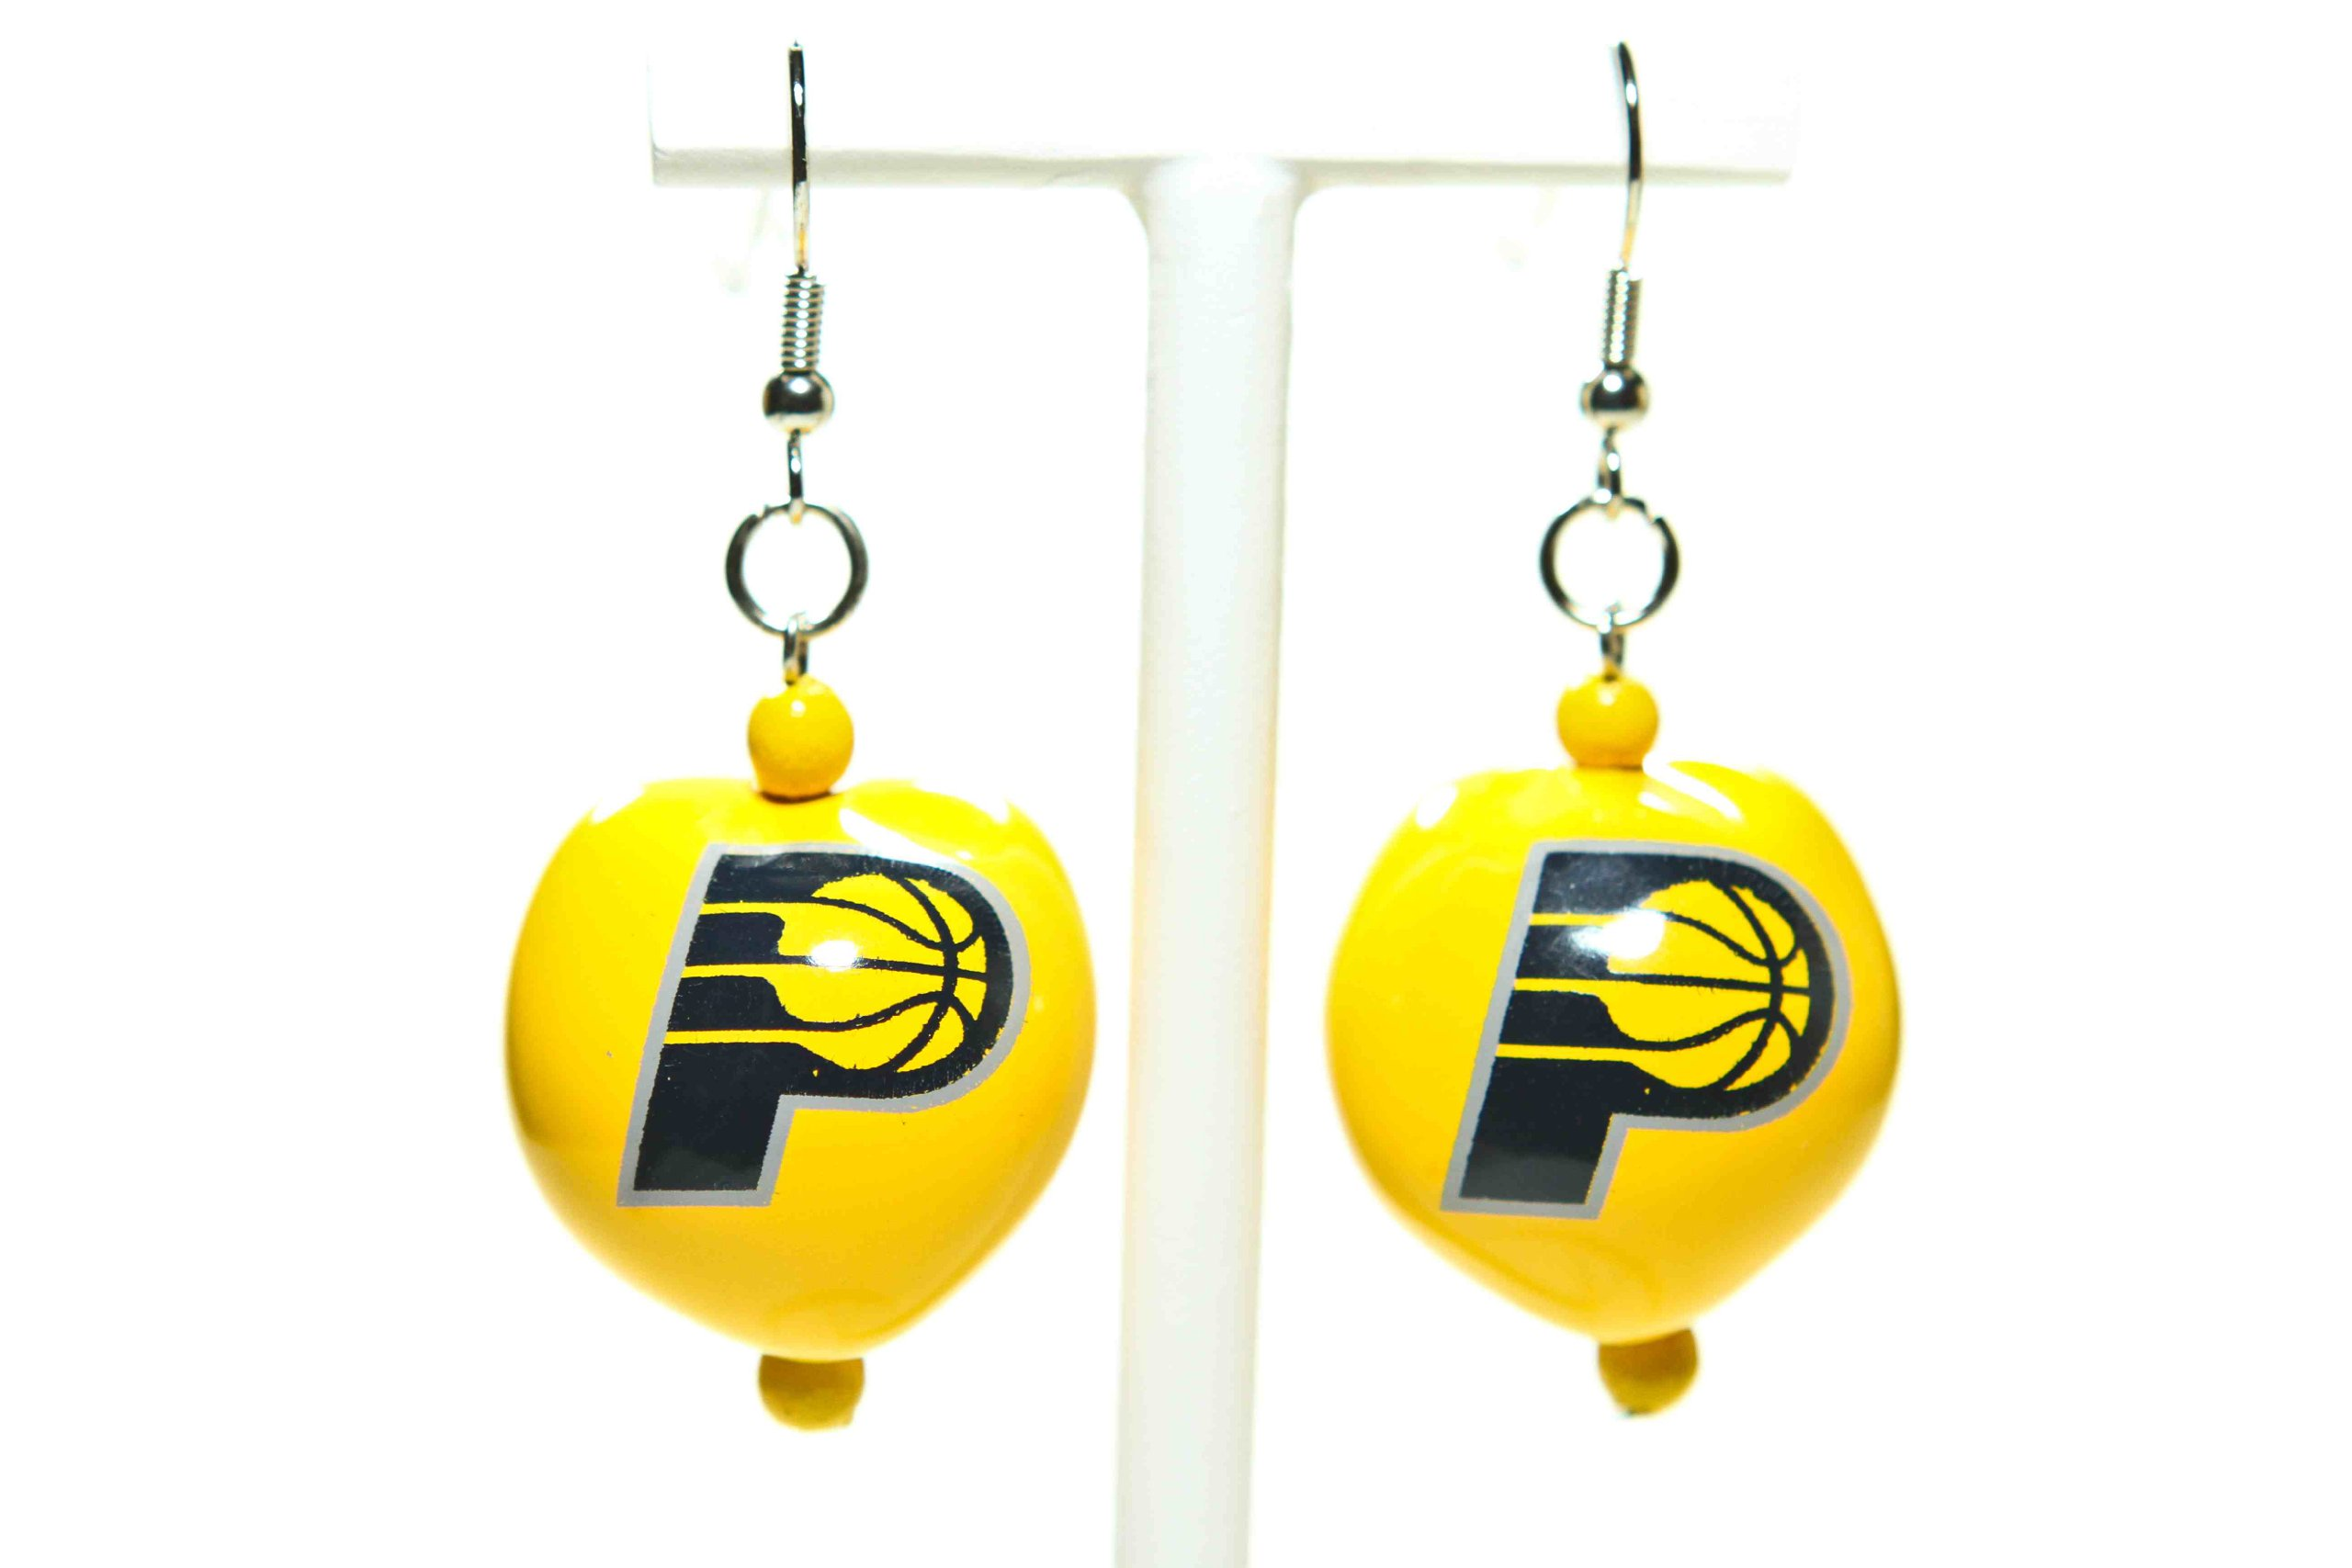 NBA Indiana Pacers Go Nuts Kukui Nut Earrings